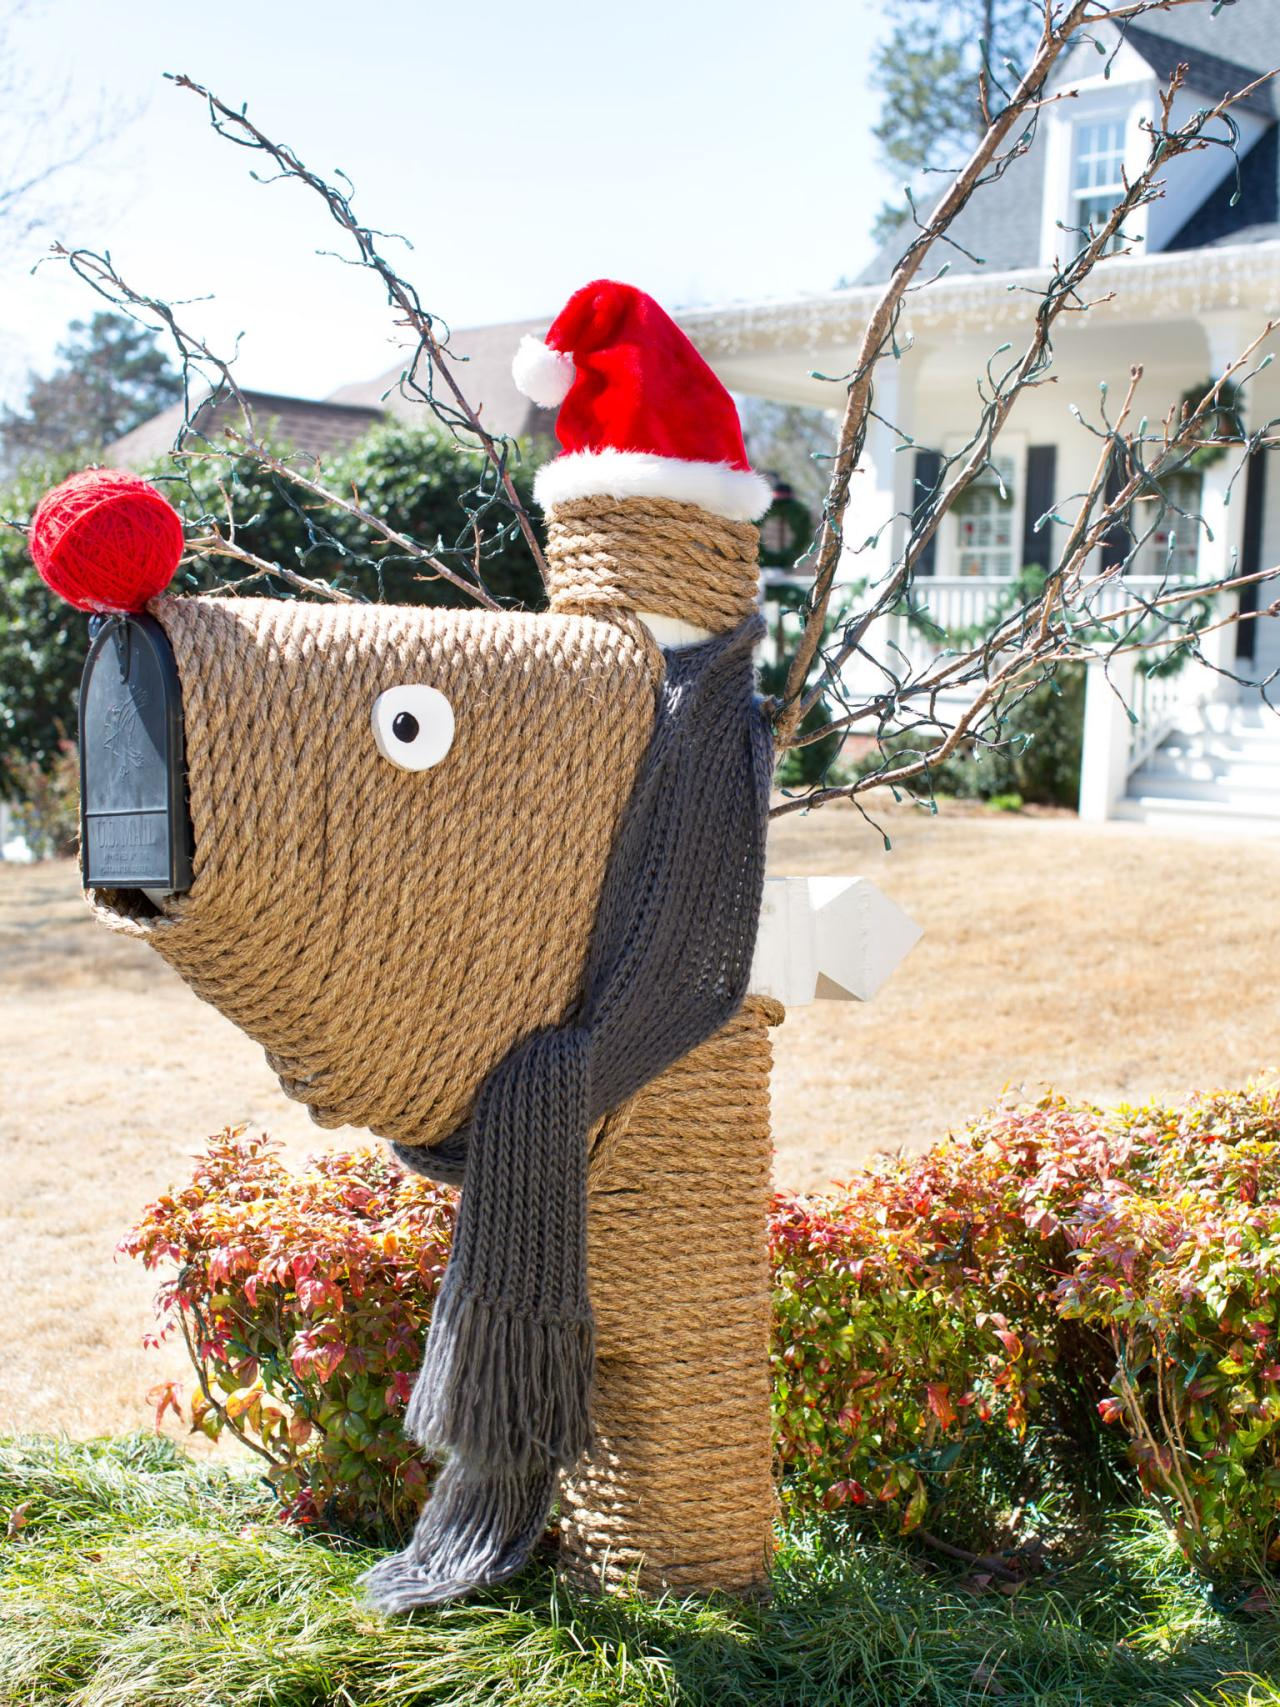 quirky and cute big and little kids alike are sure to adore this reindeer design rope wound around a mailbox frame and base creates the body of the